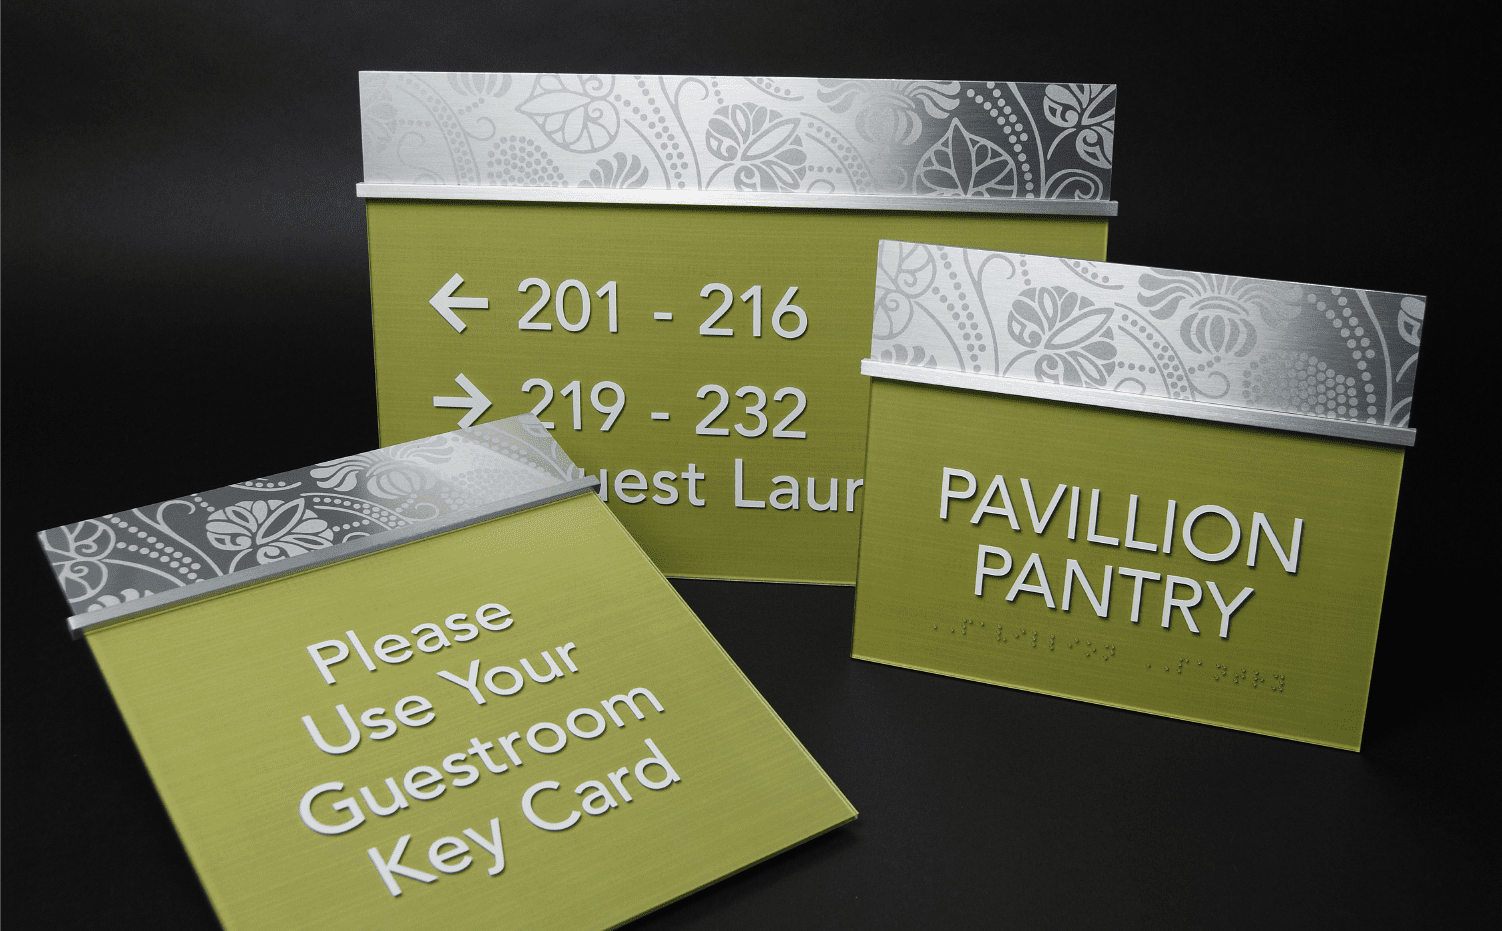 Matching Building Directory Signs and Room Numbers for Hotels to nicely complement Branded Hotel Signs, Wayfinding, ADA Signs, and Hospitality Signs